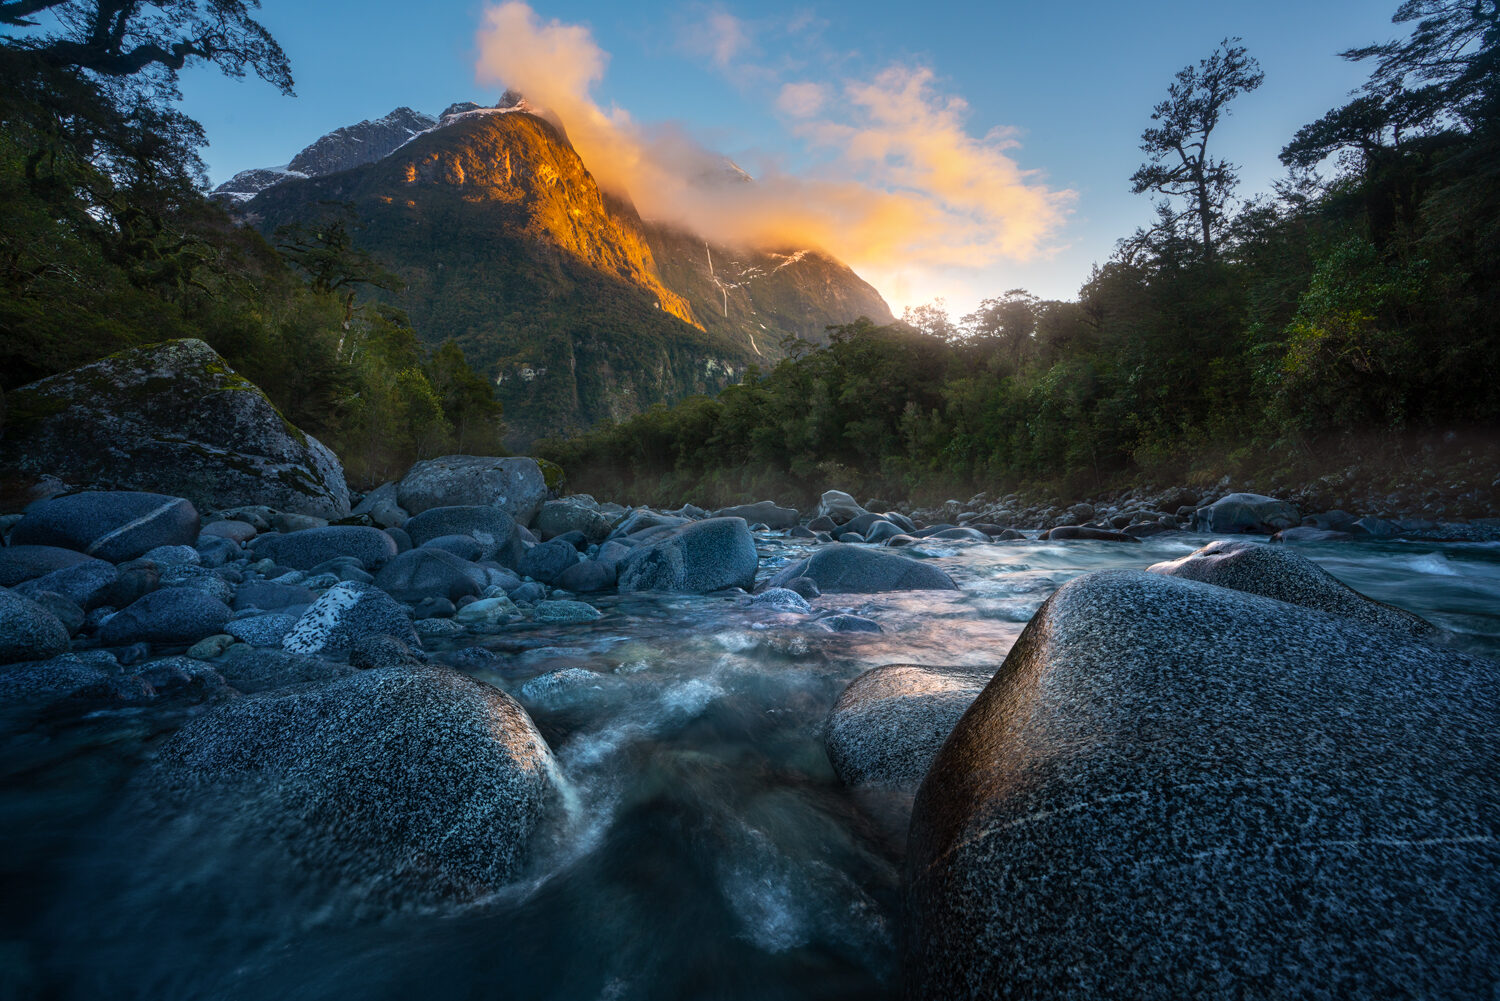 Fiordland forest and river scene